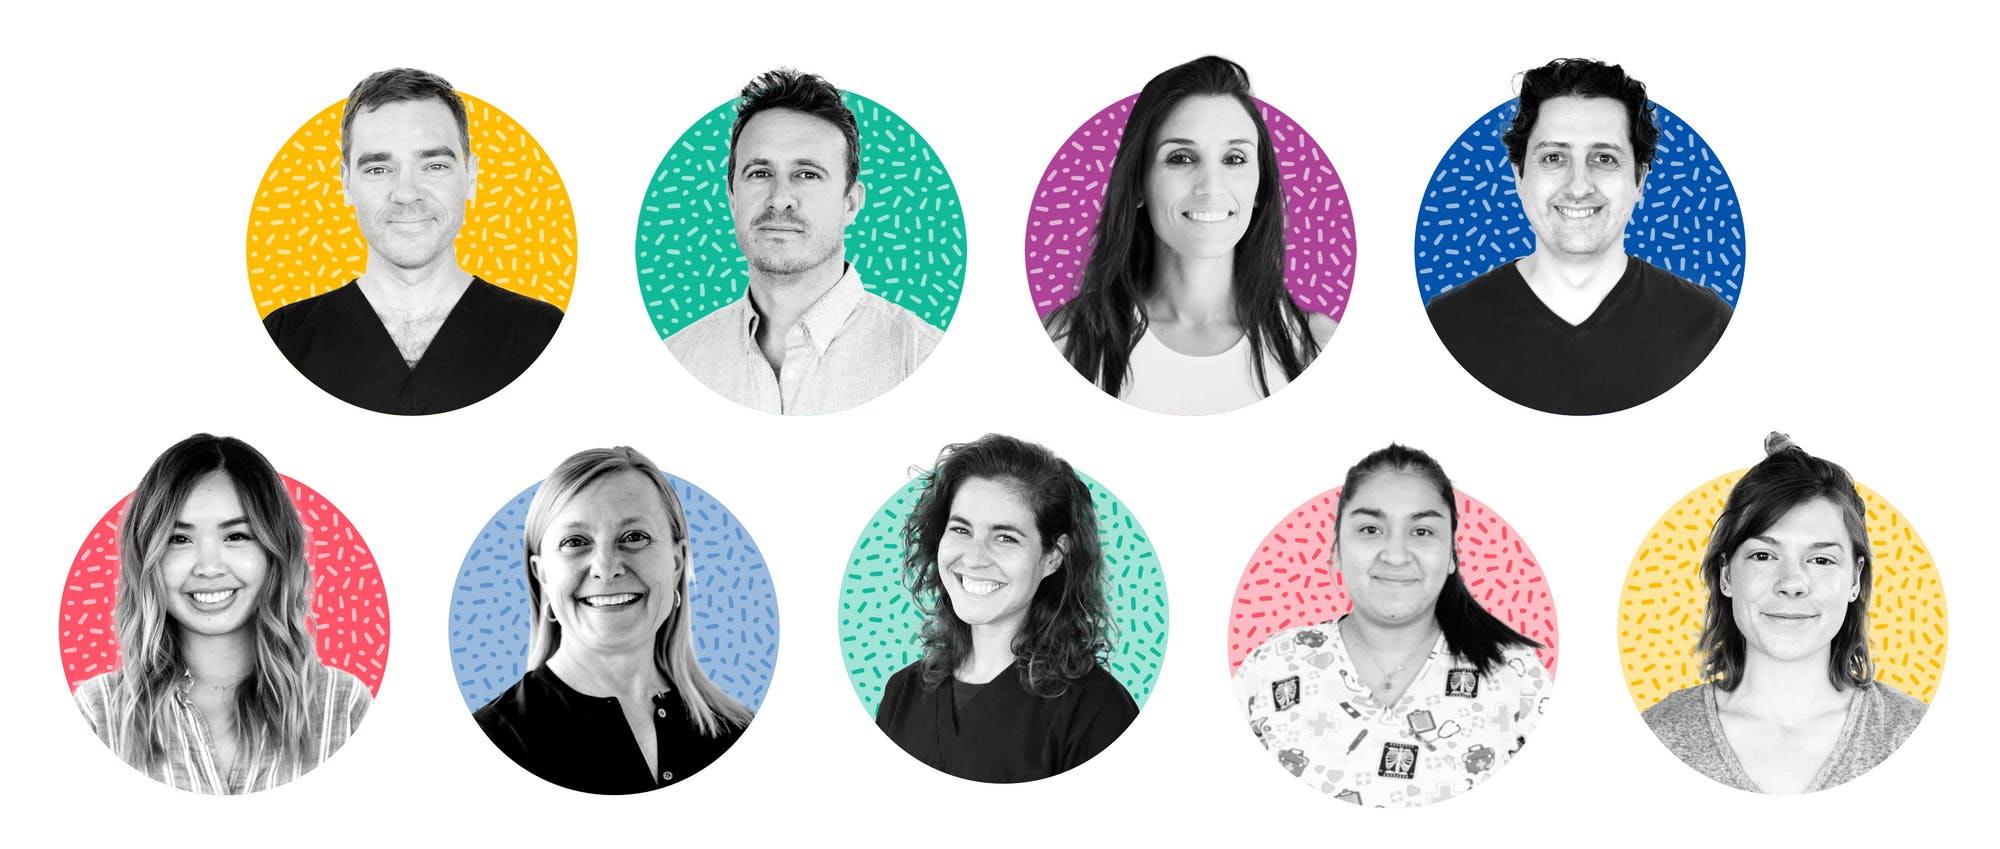 Black and white headshots of Brave Care's founders and staff.